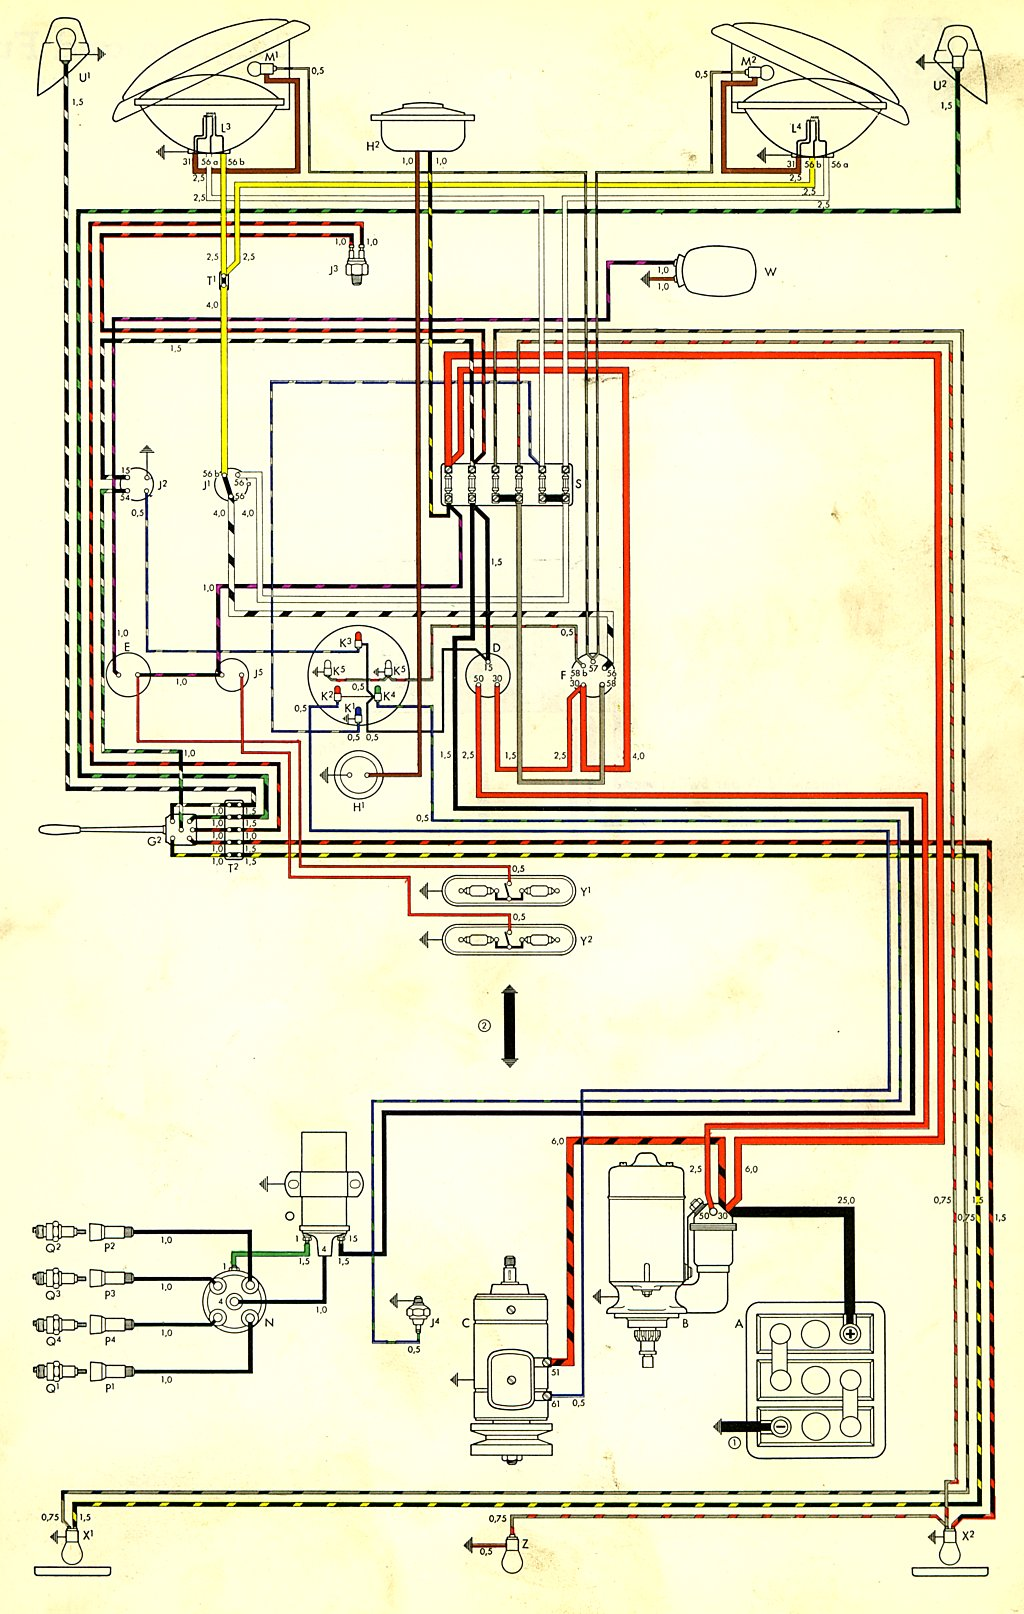 thesamba com type 2 wiring diagrams rh thesamba com VW 1970 Wiring-Diagram 1972 VW Wiring Diagram